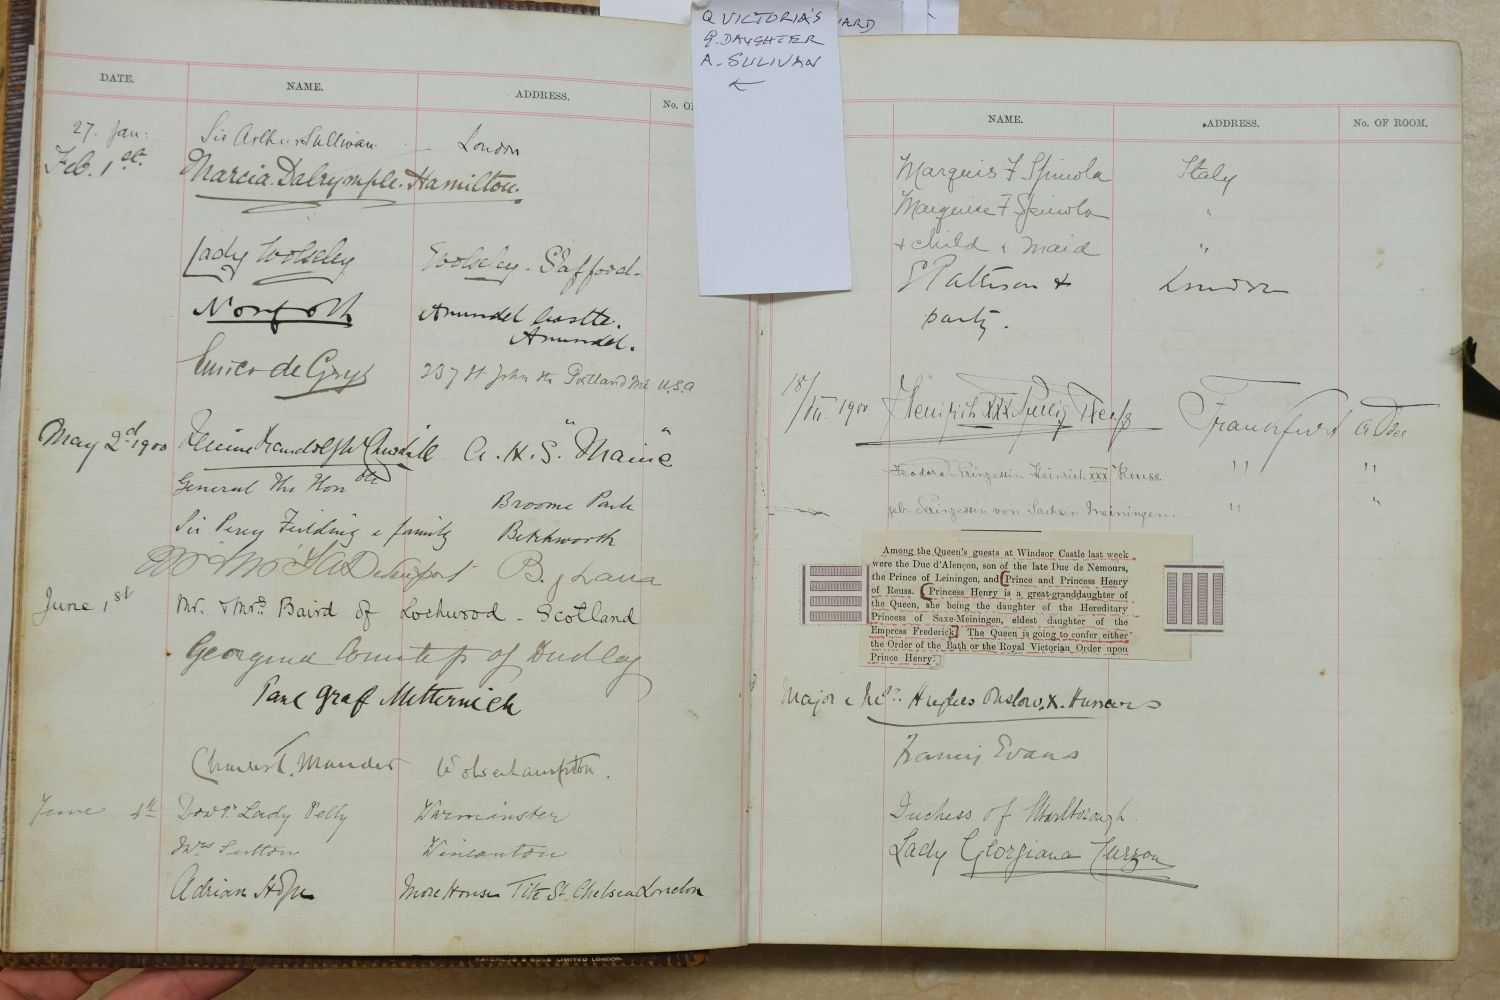 Visitors' Book. South Western Hotel, Southampton. A visitors' book, circa 1899-1912 - Image 5 of 16